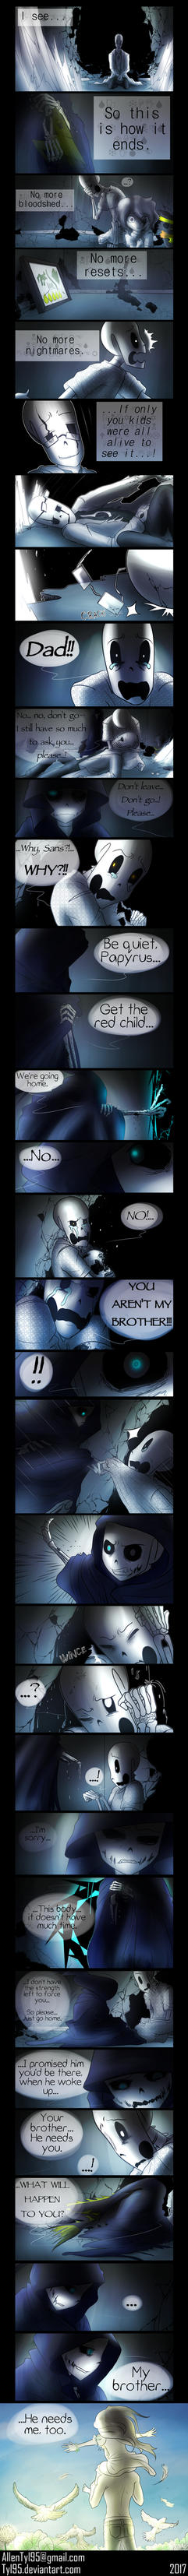 No More (Undertale Comic) by Tyl95